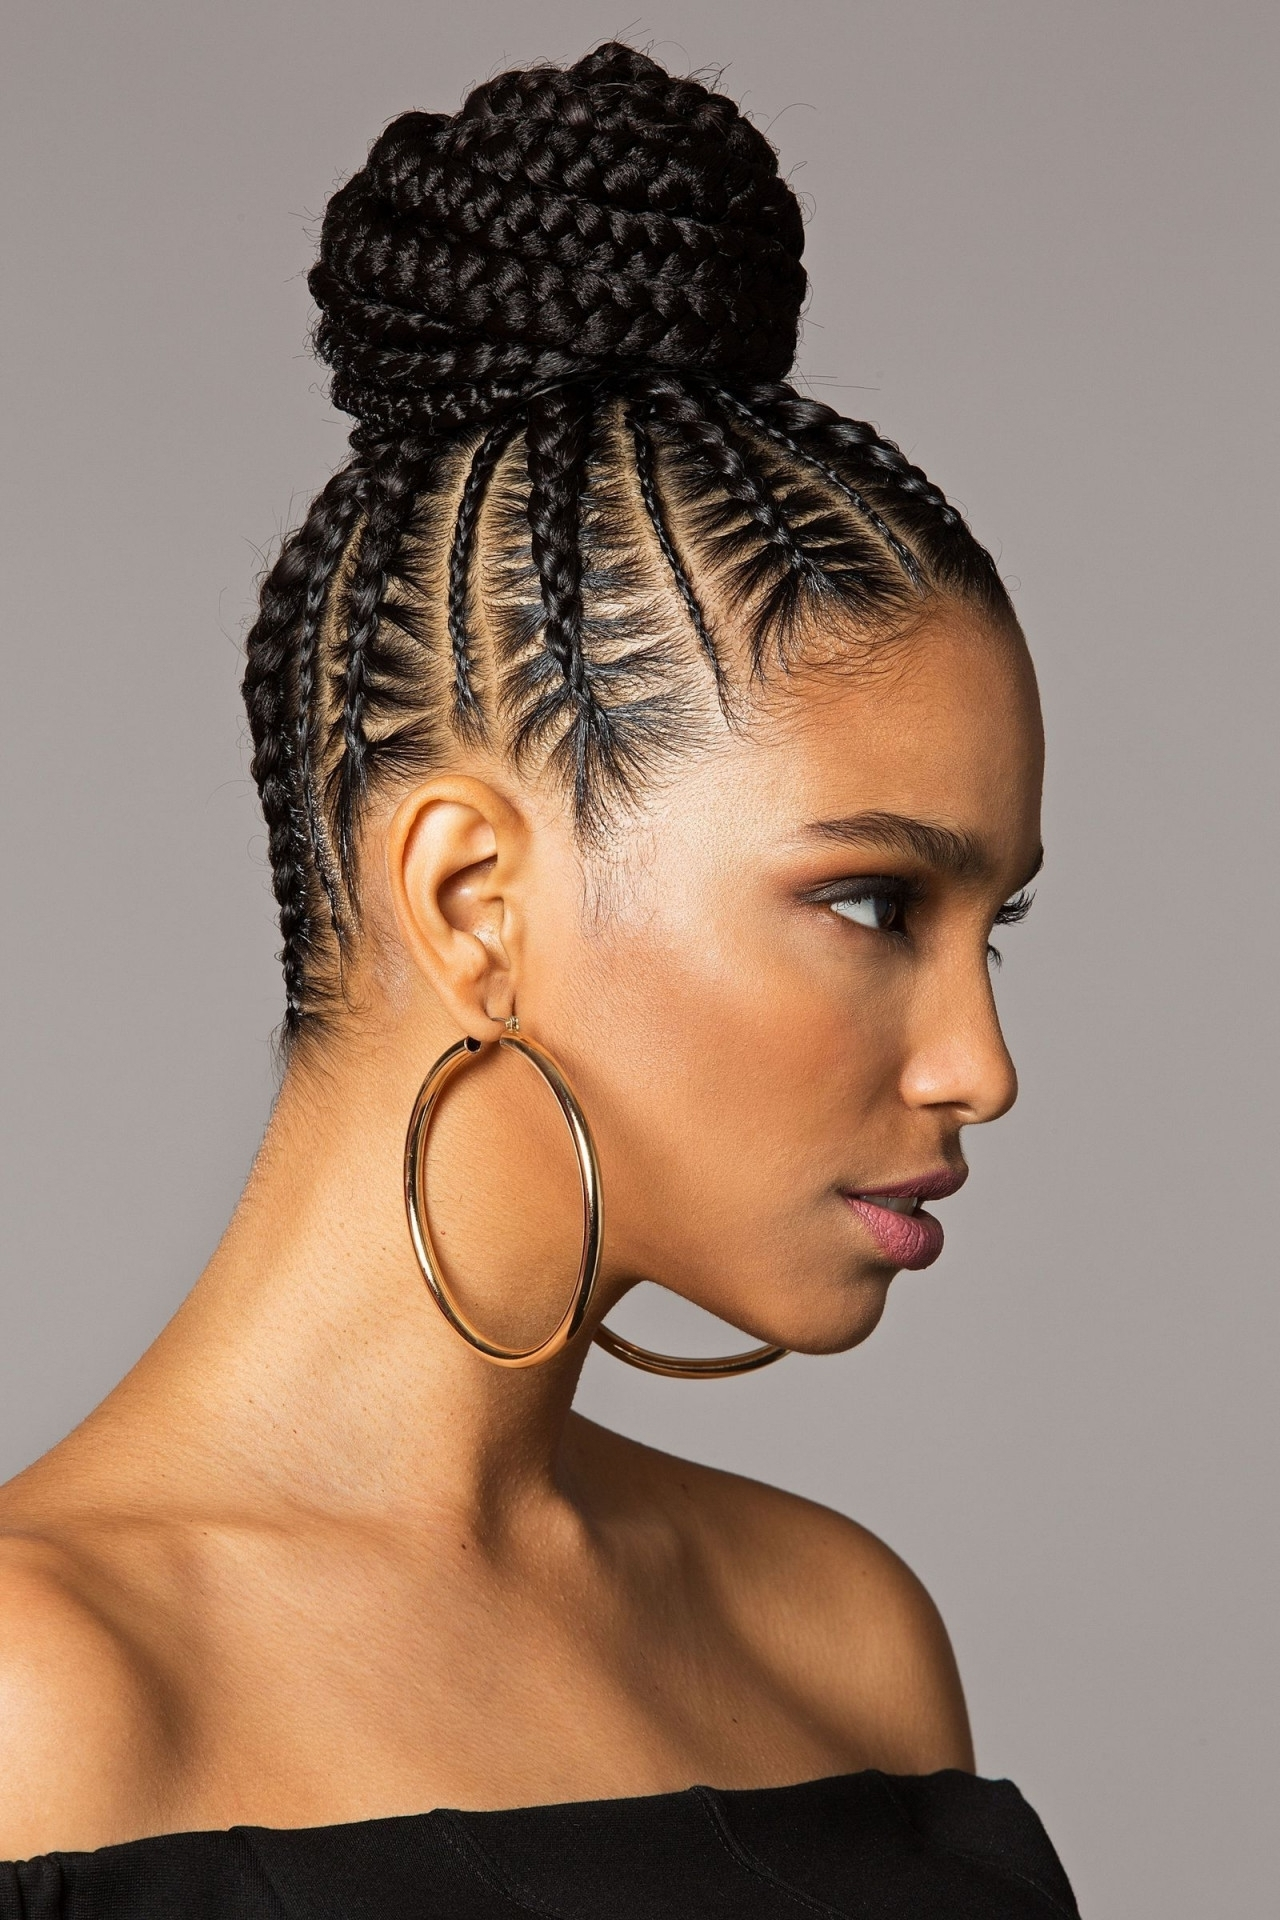 Newest Braided Hairstyles For Round Face With Braiding Hairstyles For Black Women With Round Face New You Re Going (View 14 of 15)